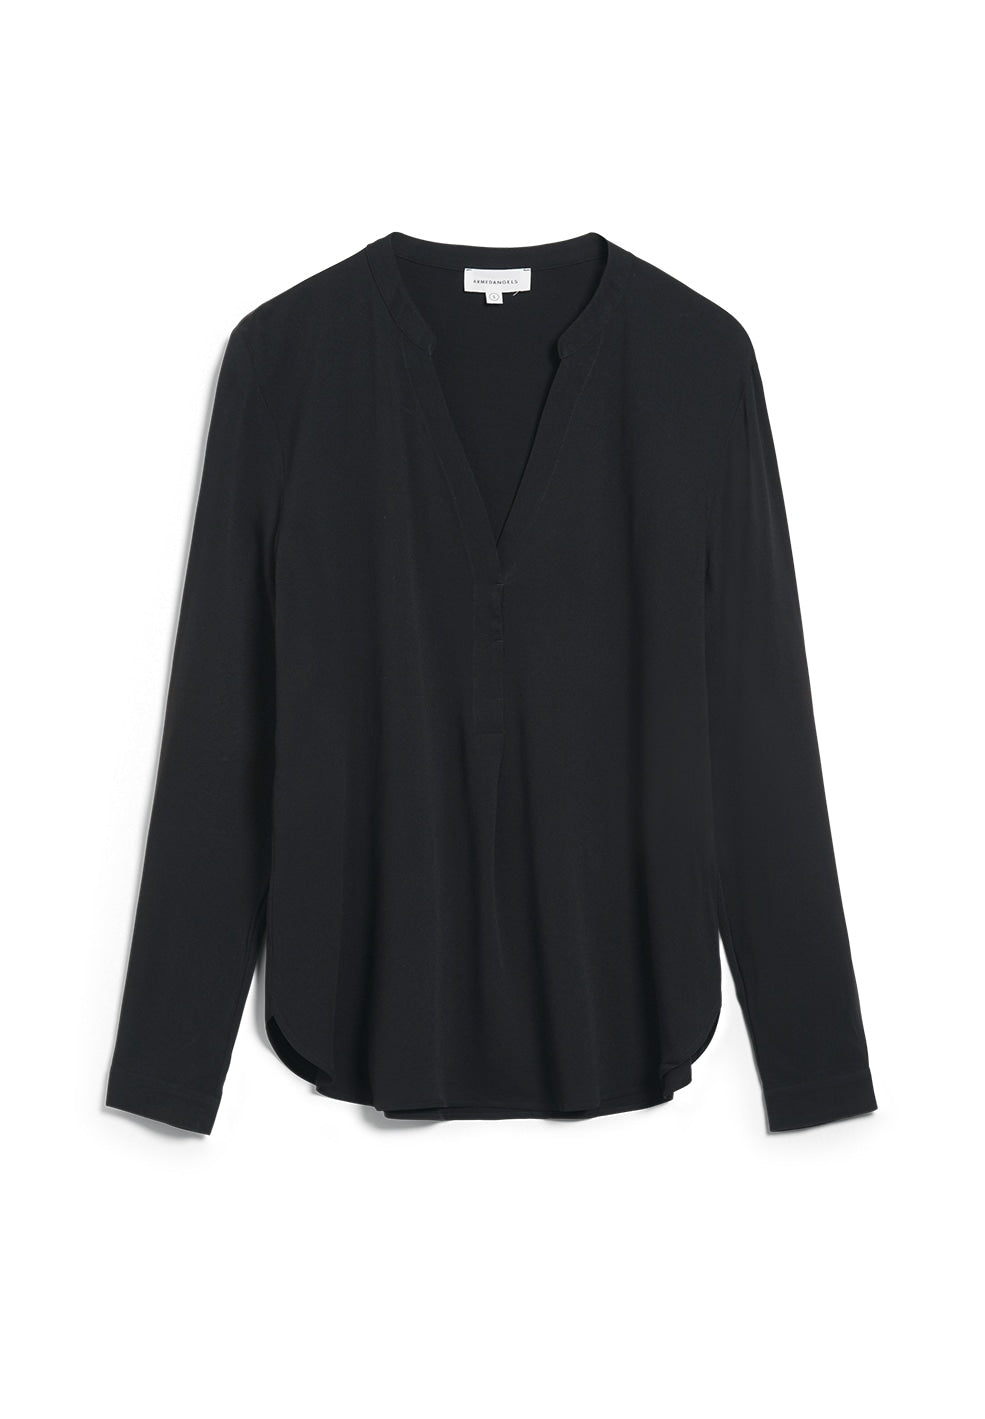 Ceylaan Eco Blouse - Black